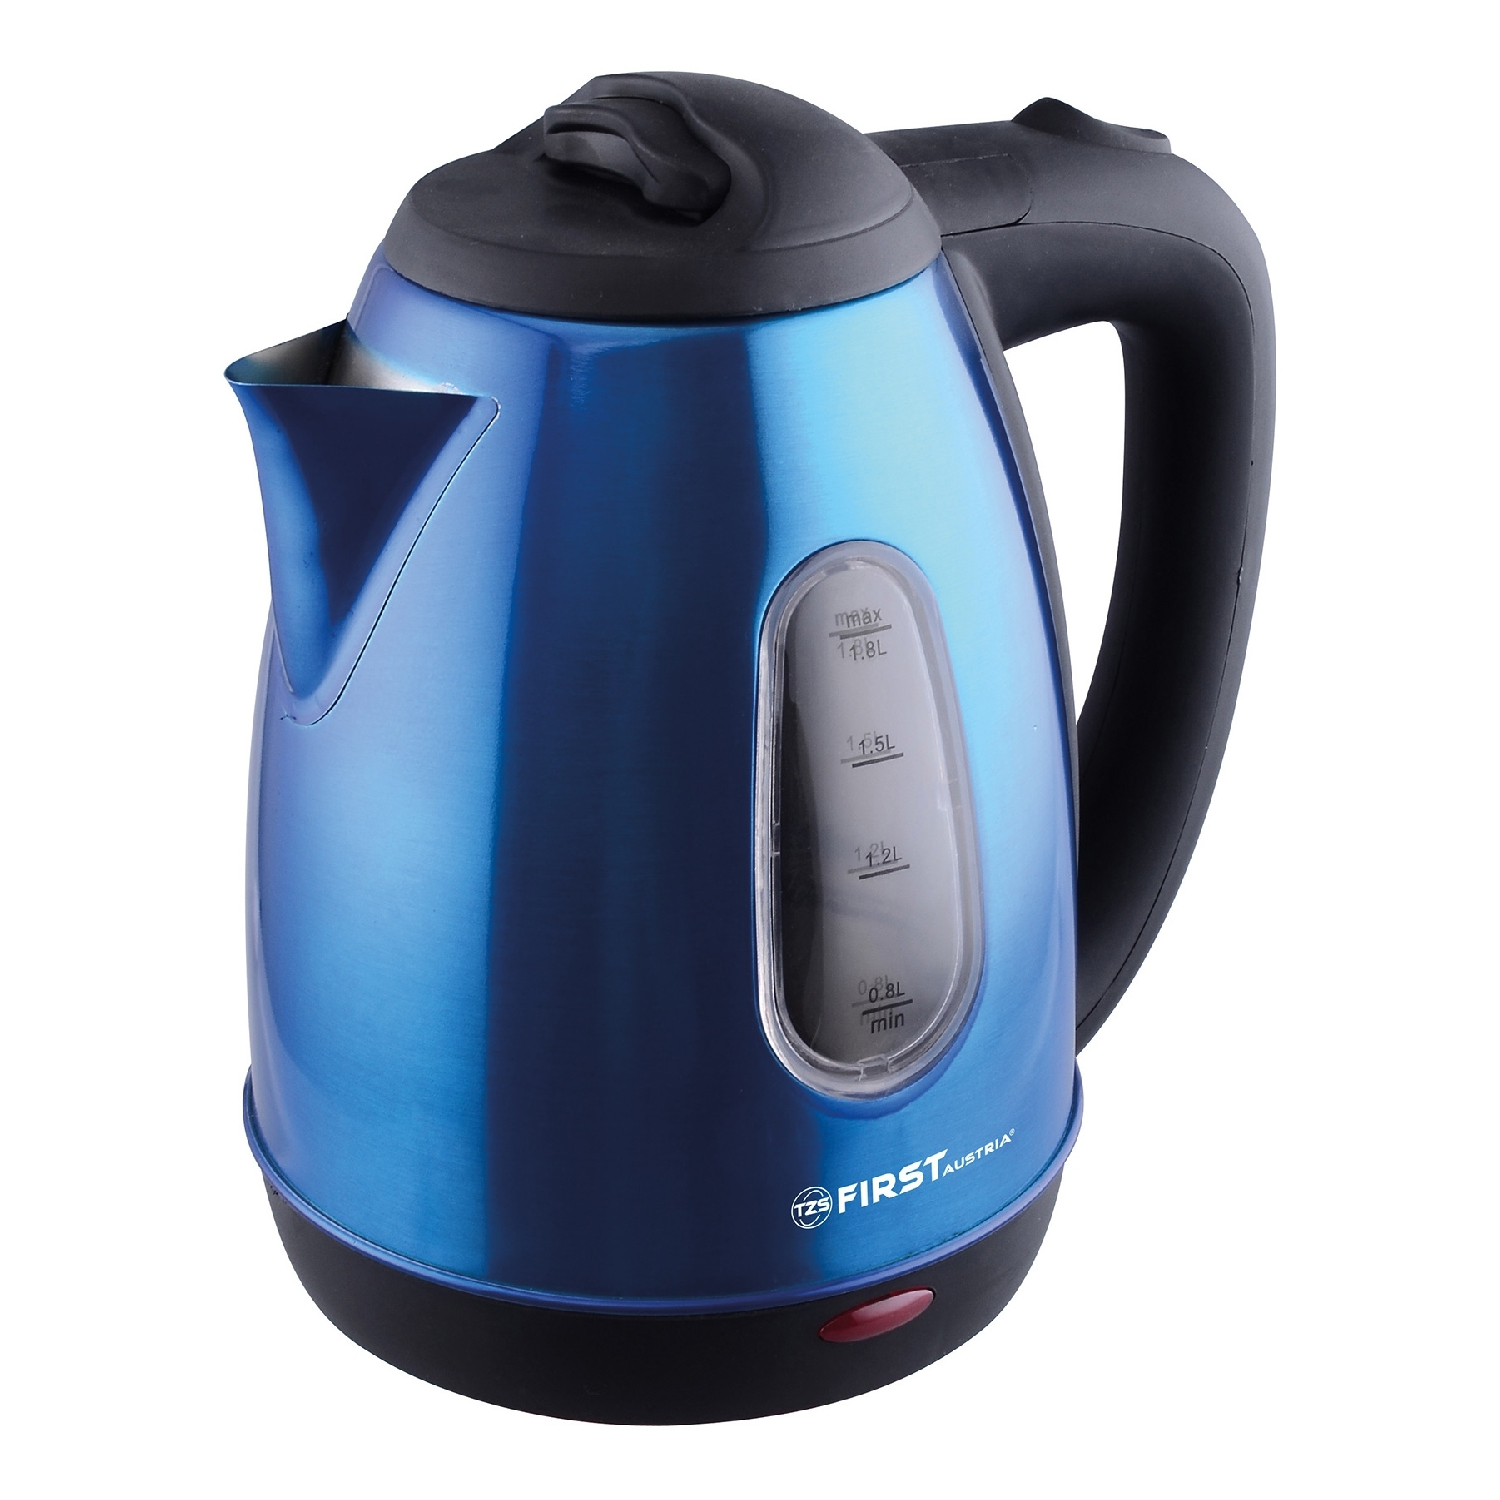 Kettle FIRST FA-5410-5 Dark blue чайник электрический first fa 5410 5 dark blue